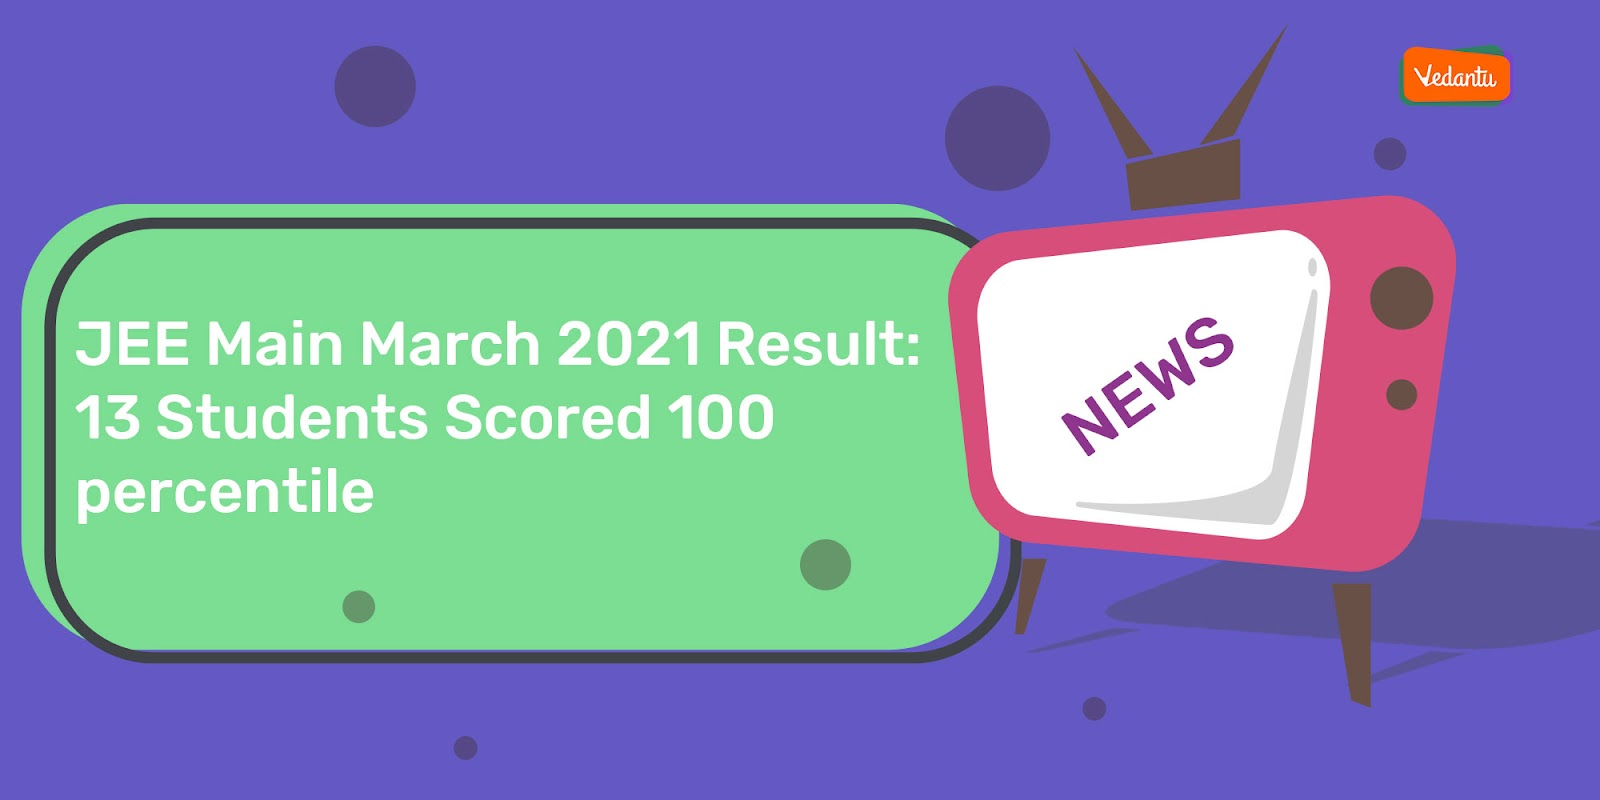 JEE Main March 2021 Result: 13 Students Scored 100 Percentile